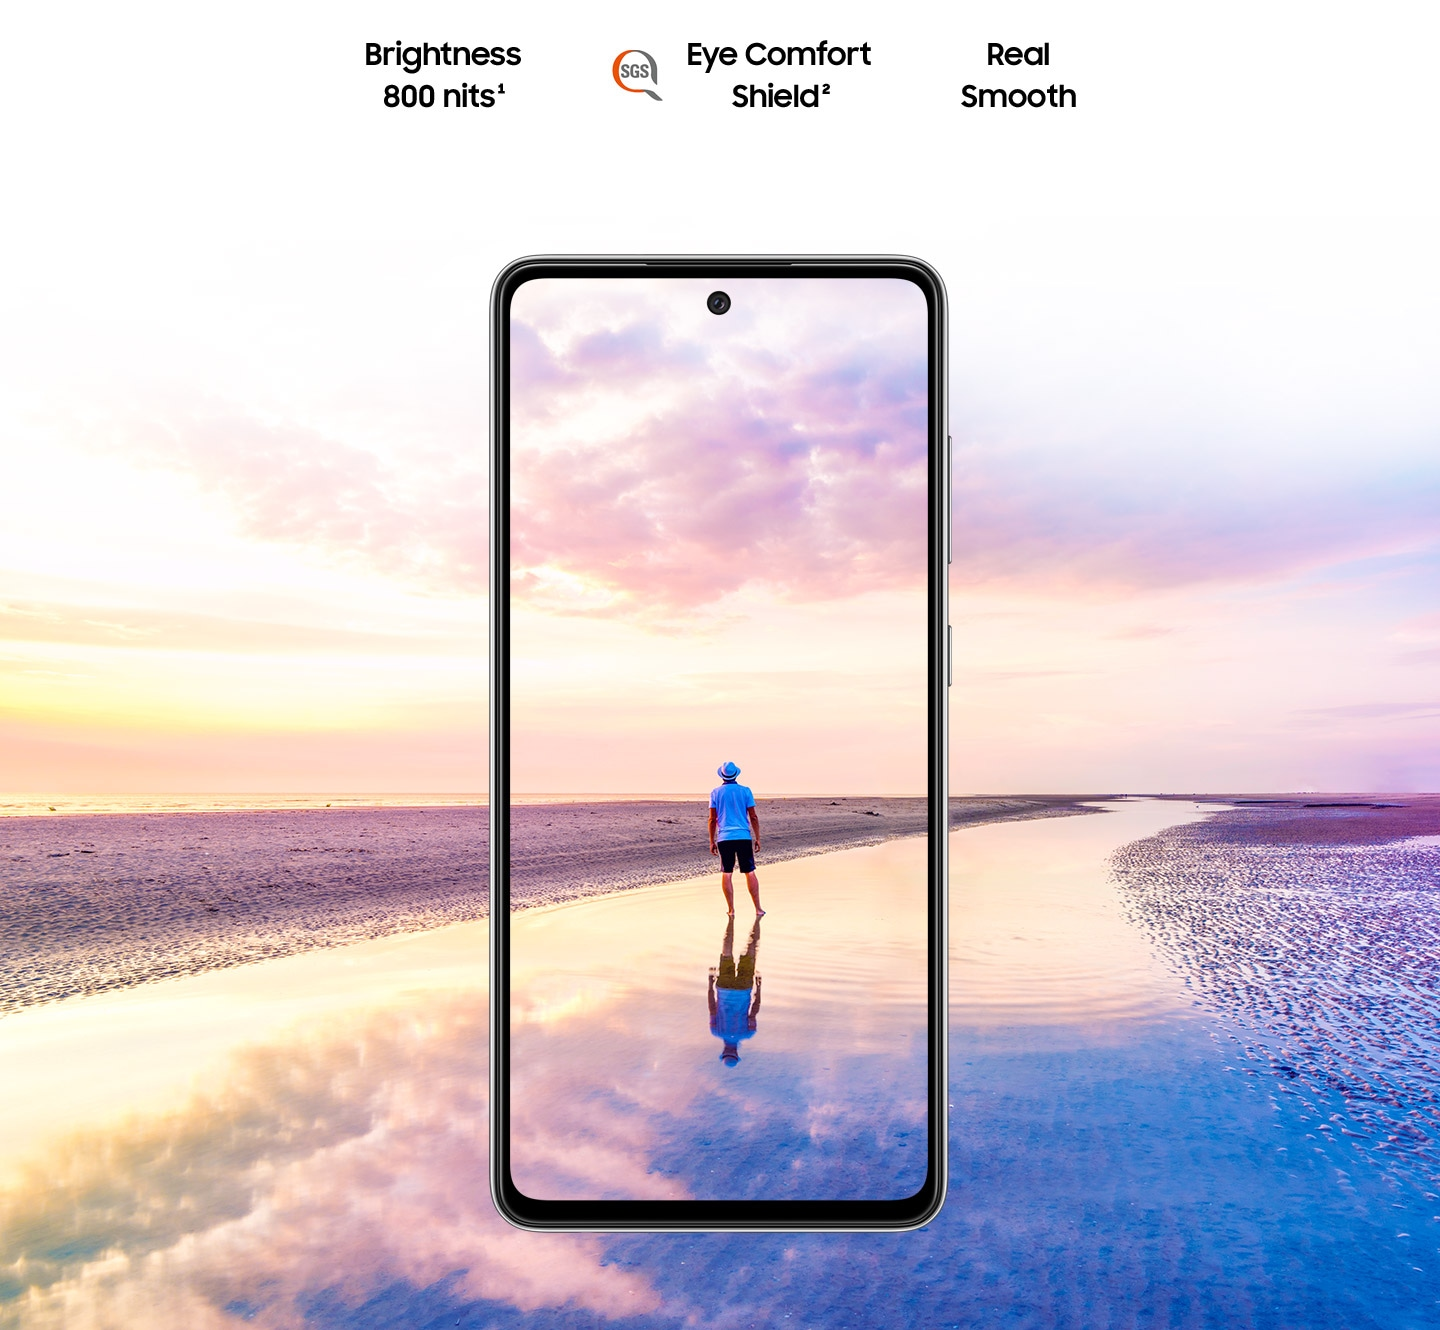 Galaxy A52 seen from the front. A scene of a man standing on a beach at sunset with pink and blue colors in the sky expands outside of the boundaries of the display. Text says Brightness 800 nits, Eye Comfort Shield, with the SGS logo and Real Smooth.